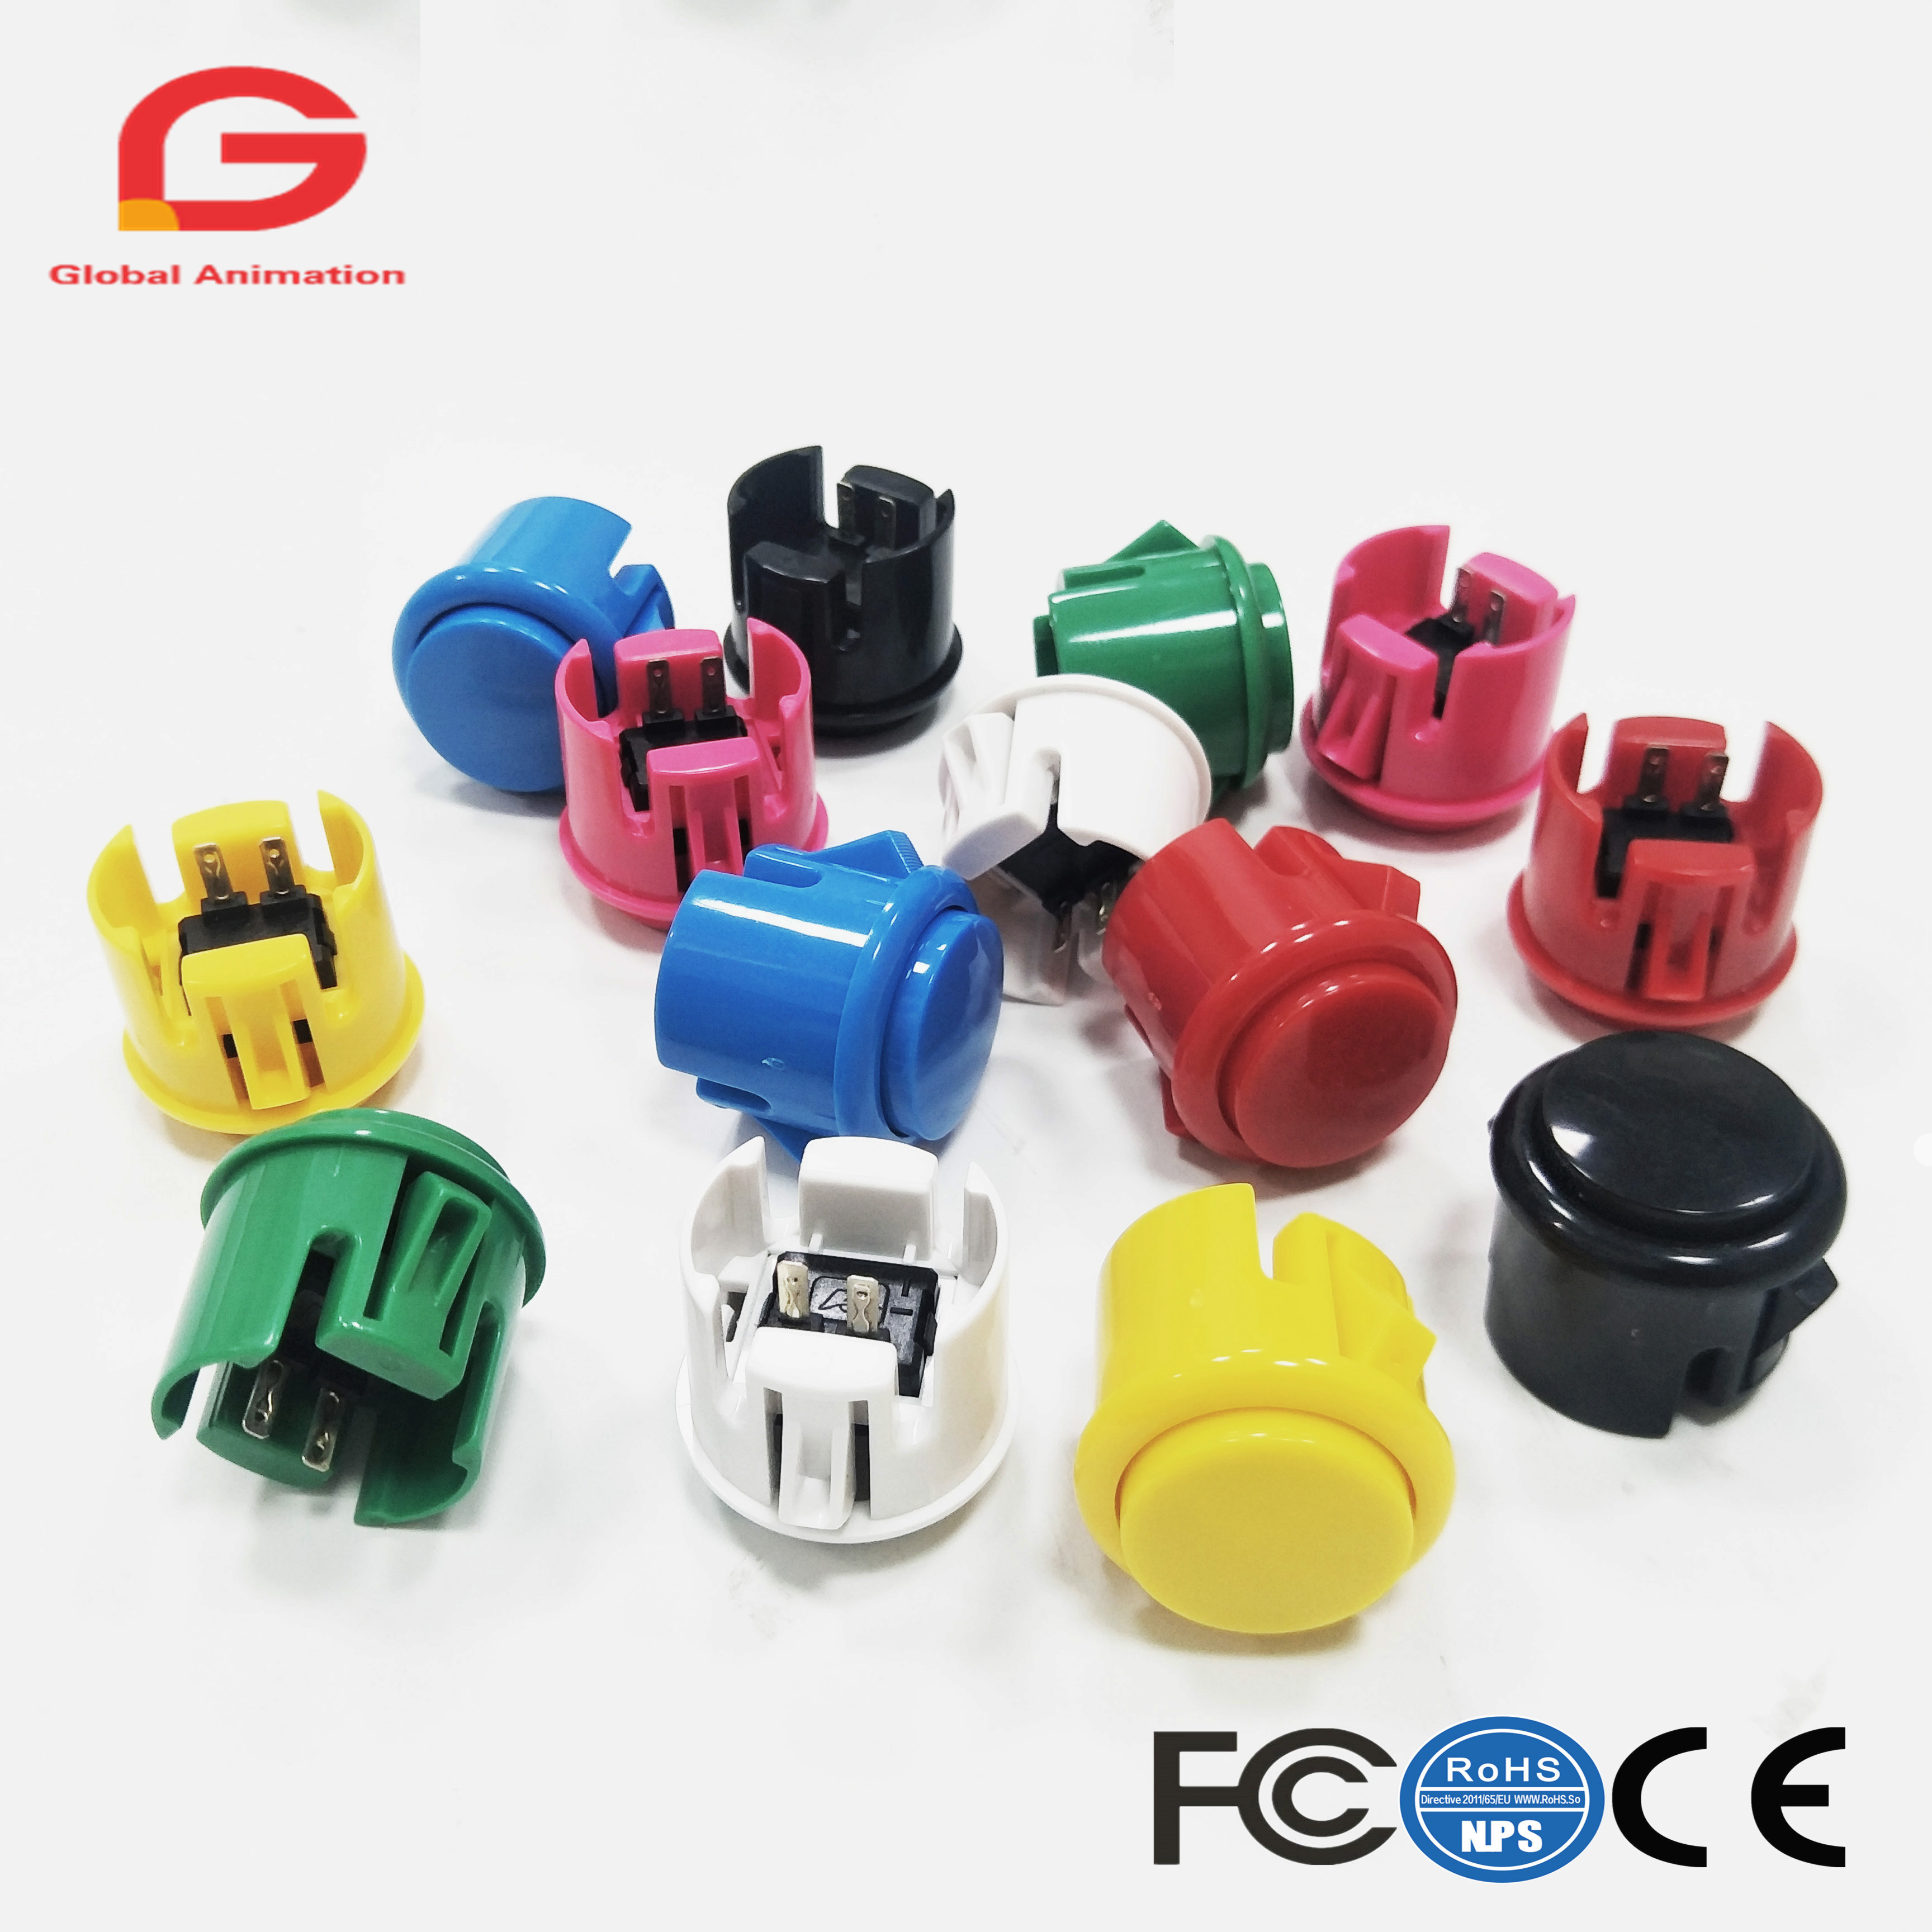 10x 30mm Arcade Push Buttons Switch Works For Arcade Joystick Fighting Stickers Machine PS2 PS3 Xbox 360 Games Parts image